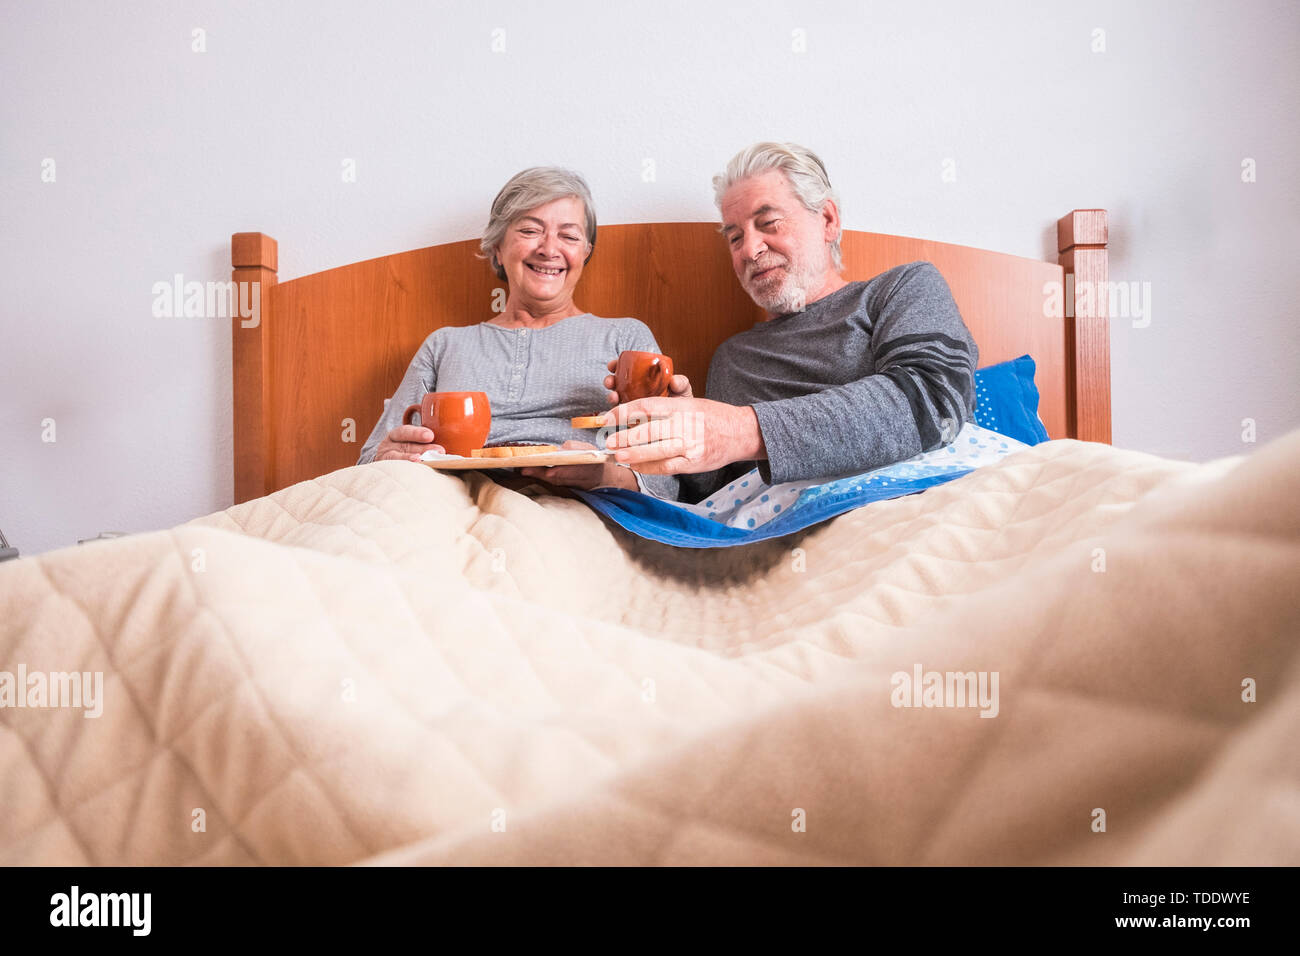 caucasian aged couple doing breakfast at home in the bed. nice natural scene at home for togheterness life concept. love and carefree people married. Stock Photo